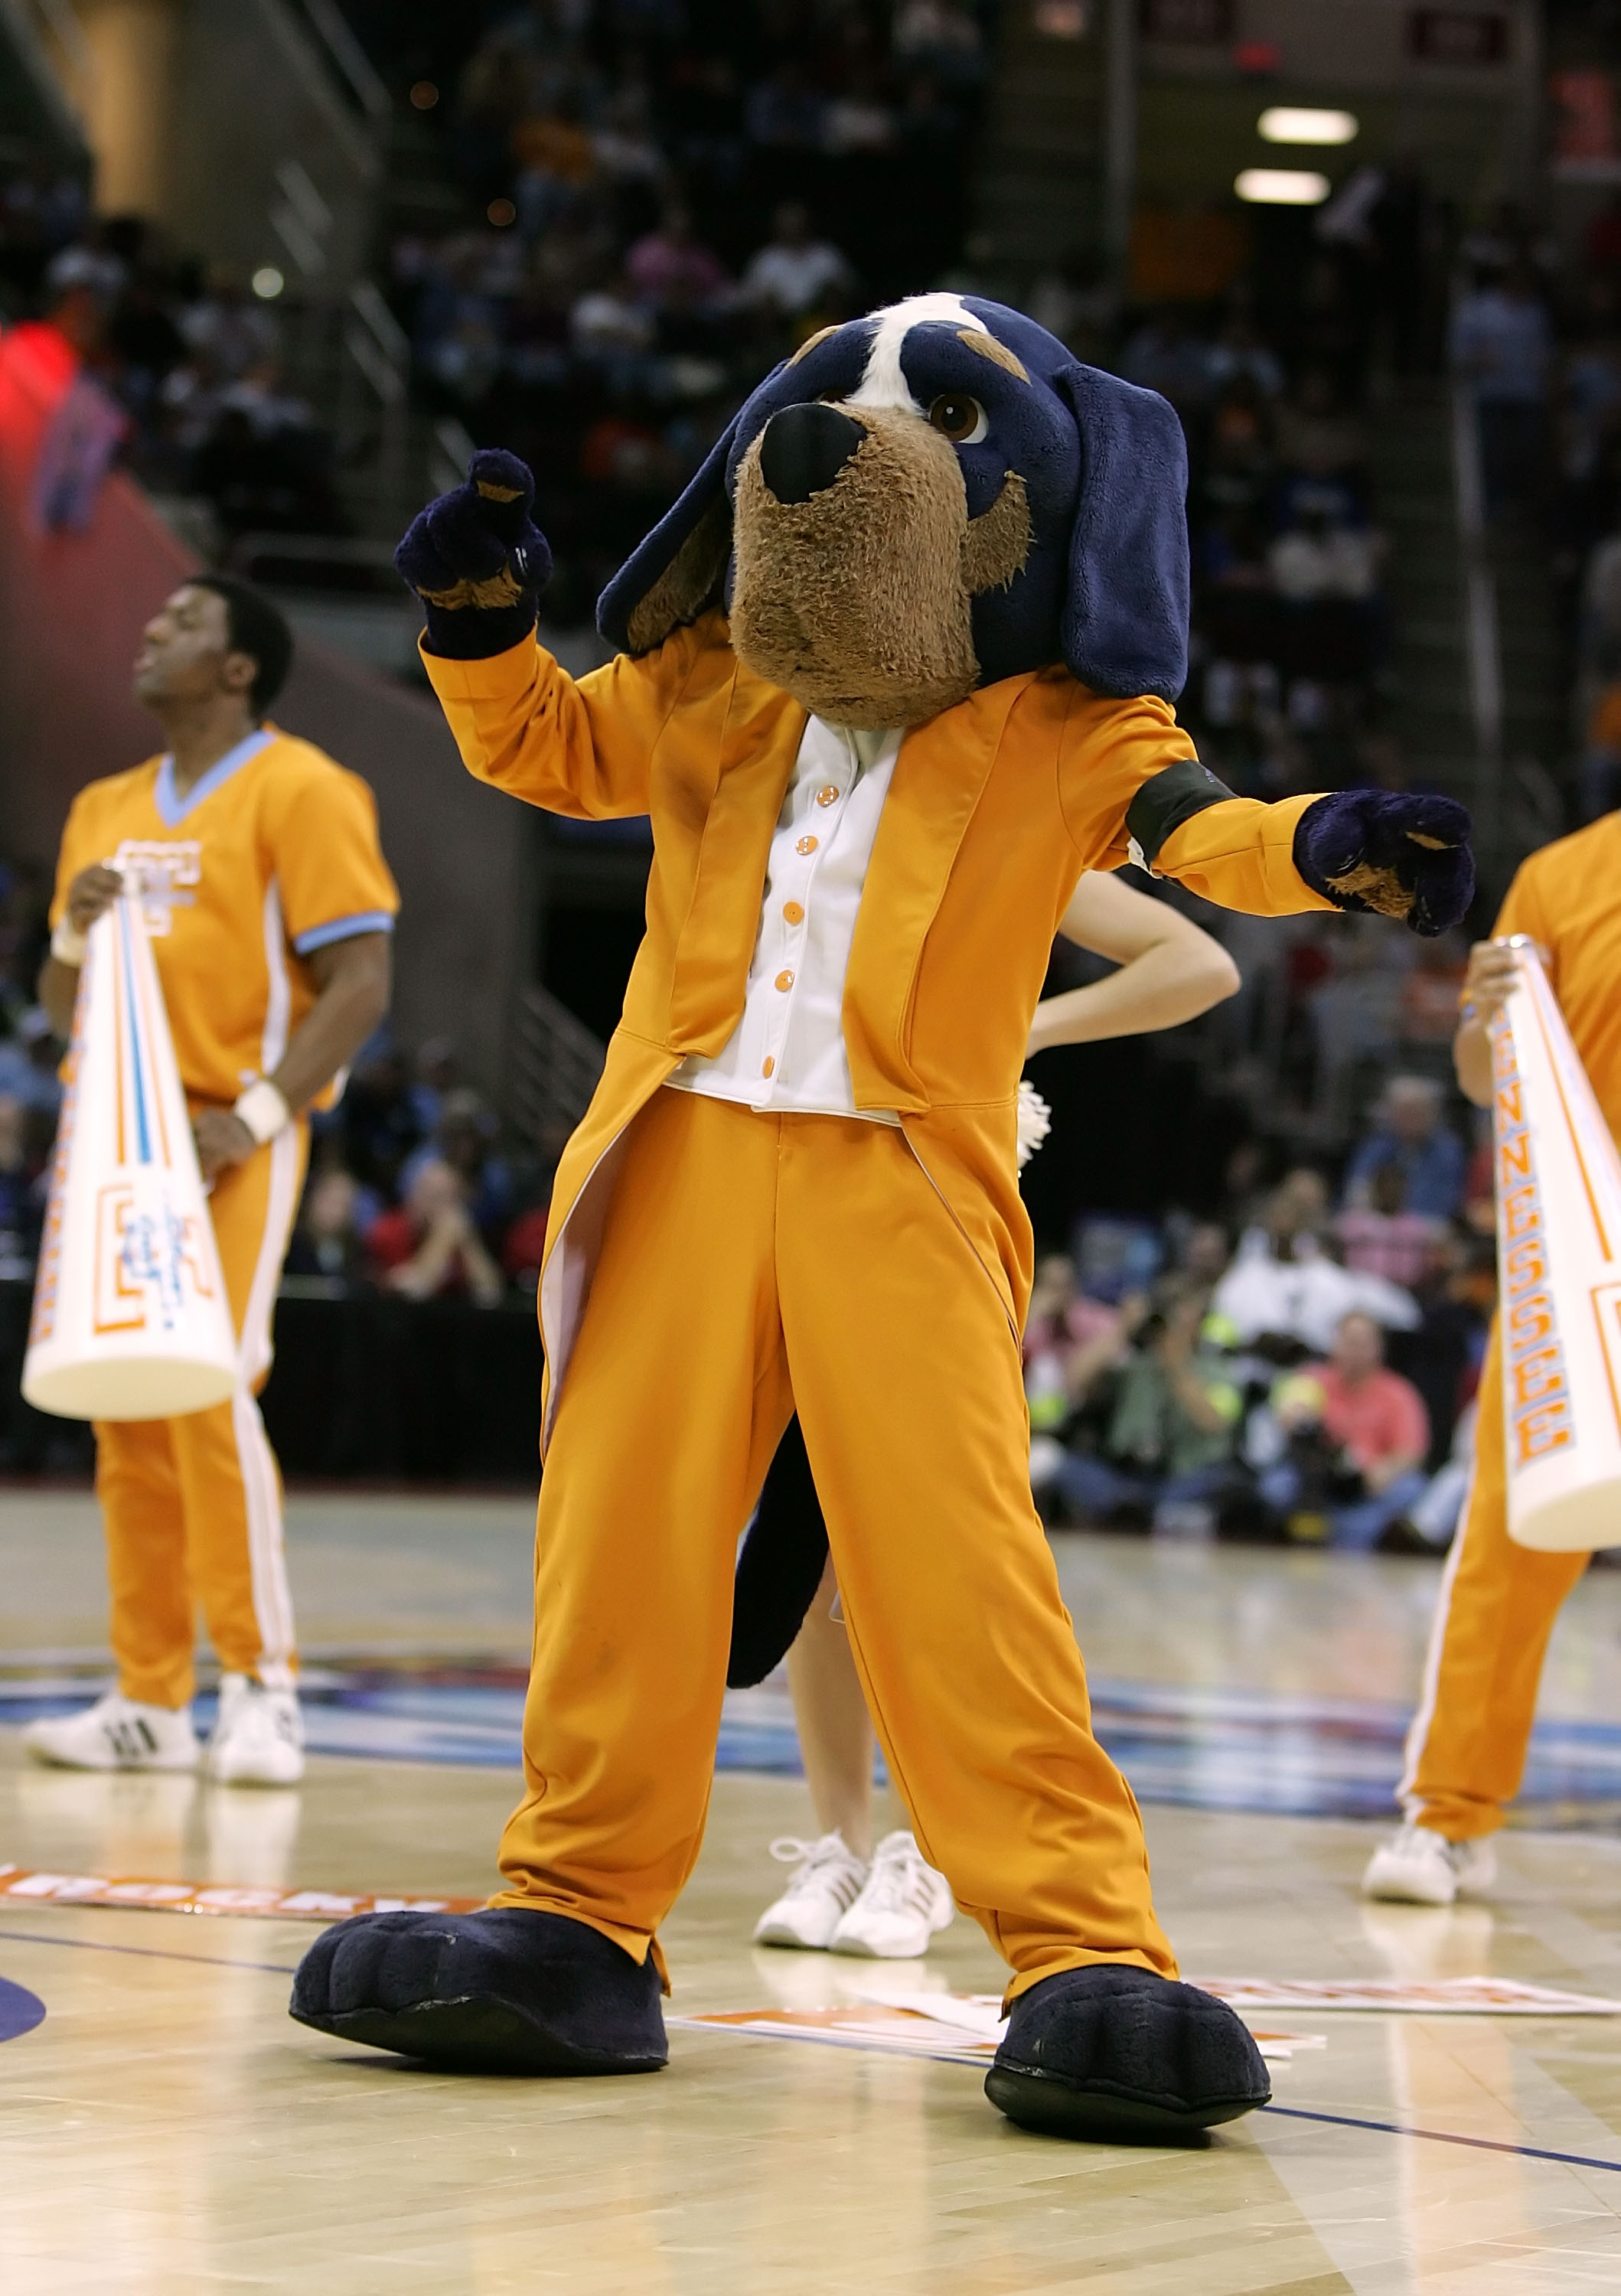 CLEVELAND - APRIL 01:  Smokey, the mascot of the Tennessee Lady Volunteers, performs against the North Carolina Tar Heels during their National Semifinal game of the 2007 NCAA Women's Final Four at the Quicken Loans Arena on April 1, 2007 in Cleveland, Oh